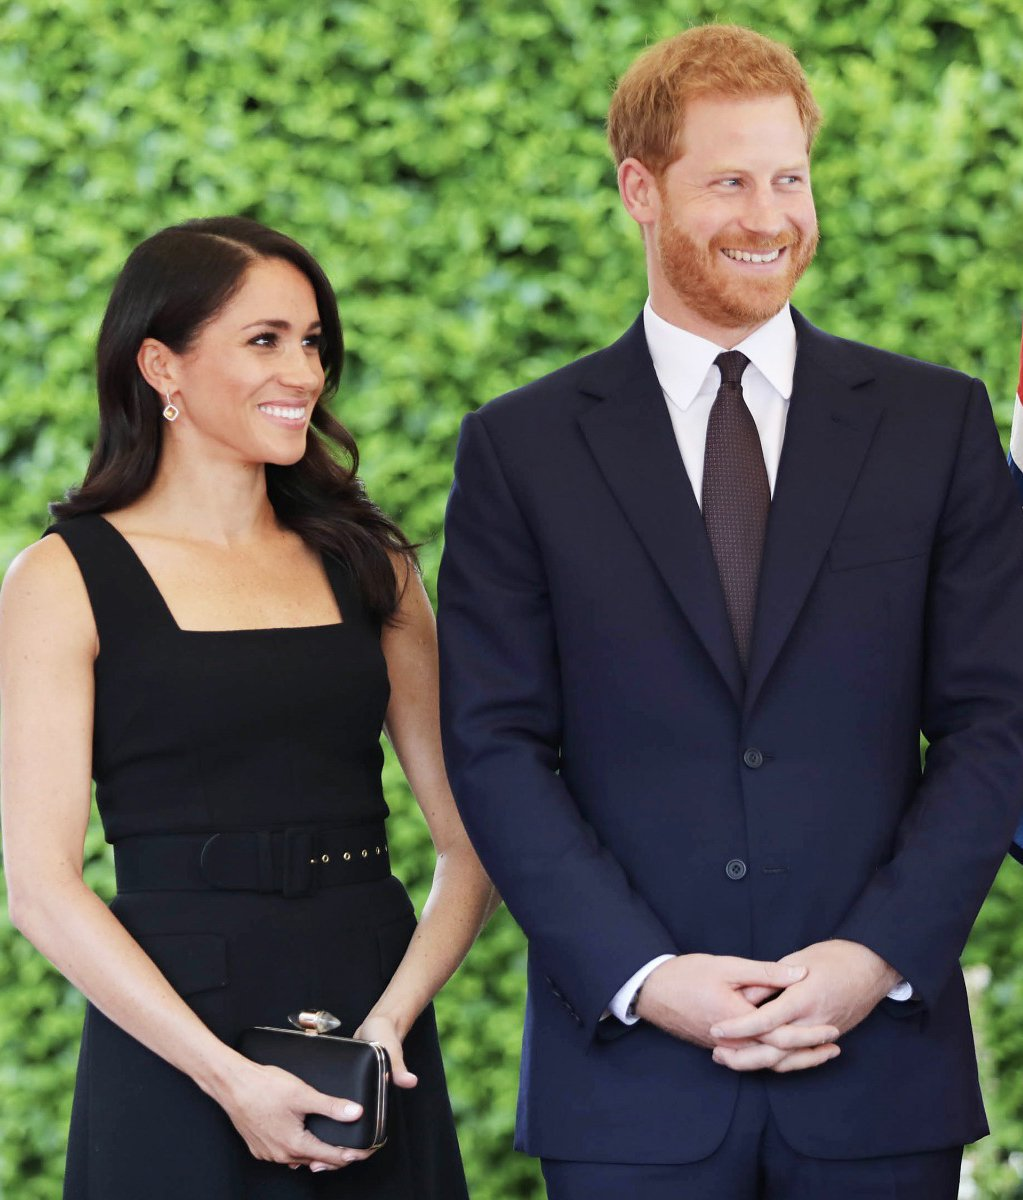 Meghan Markle and Prince Harry Have Been Doing Secret Events All Week